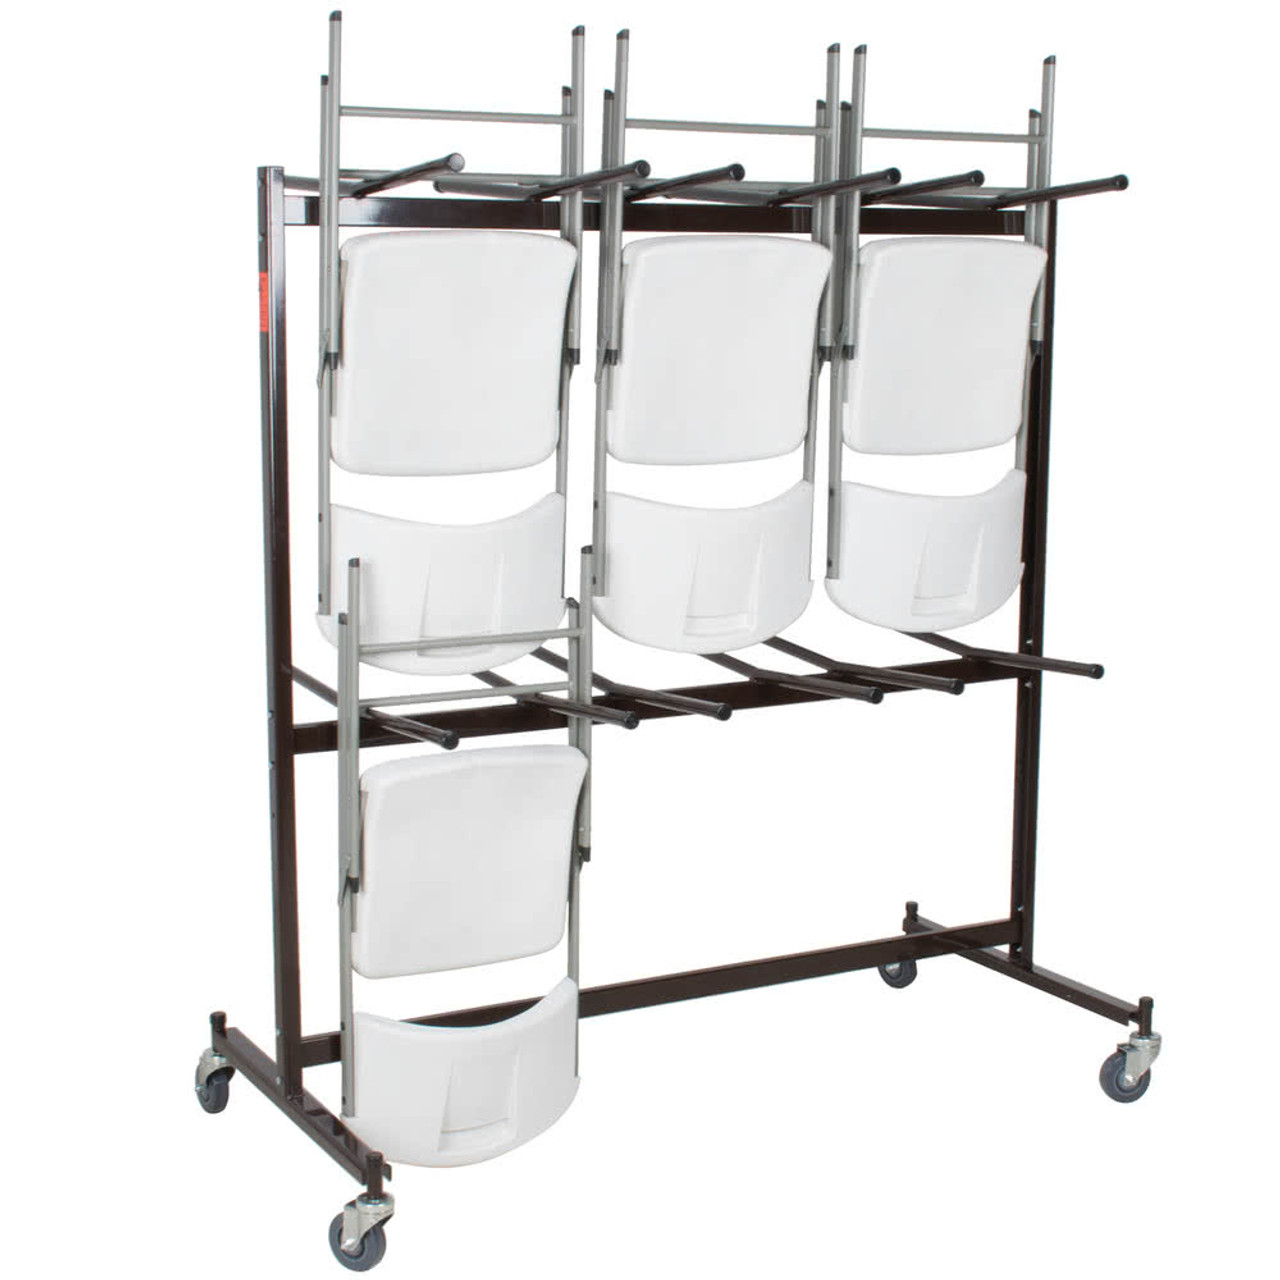 Fresh Folding Bar Cart with Wheels